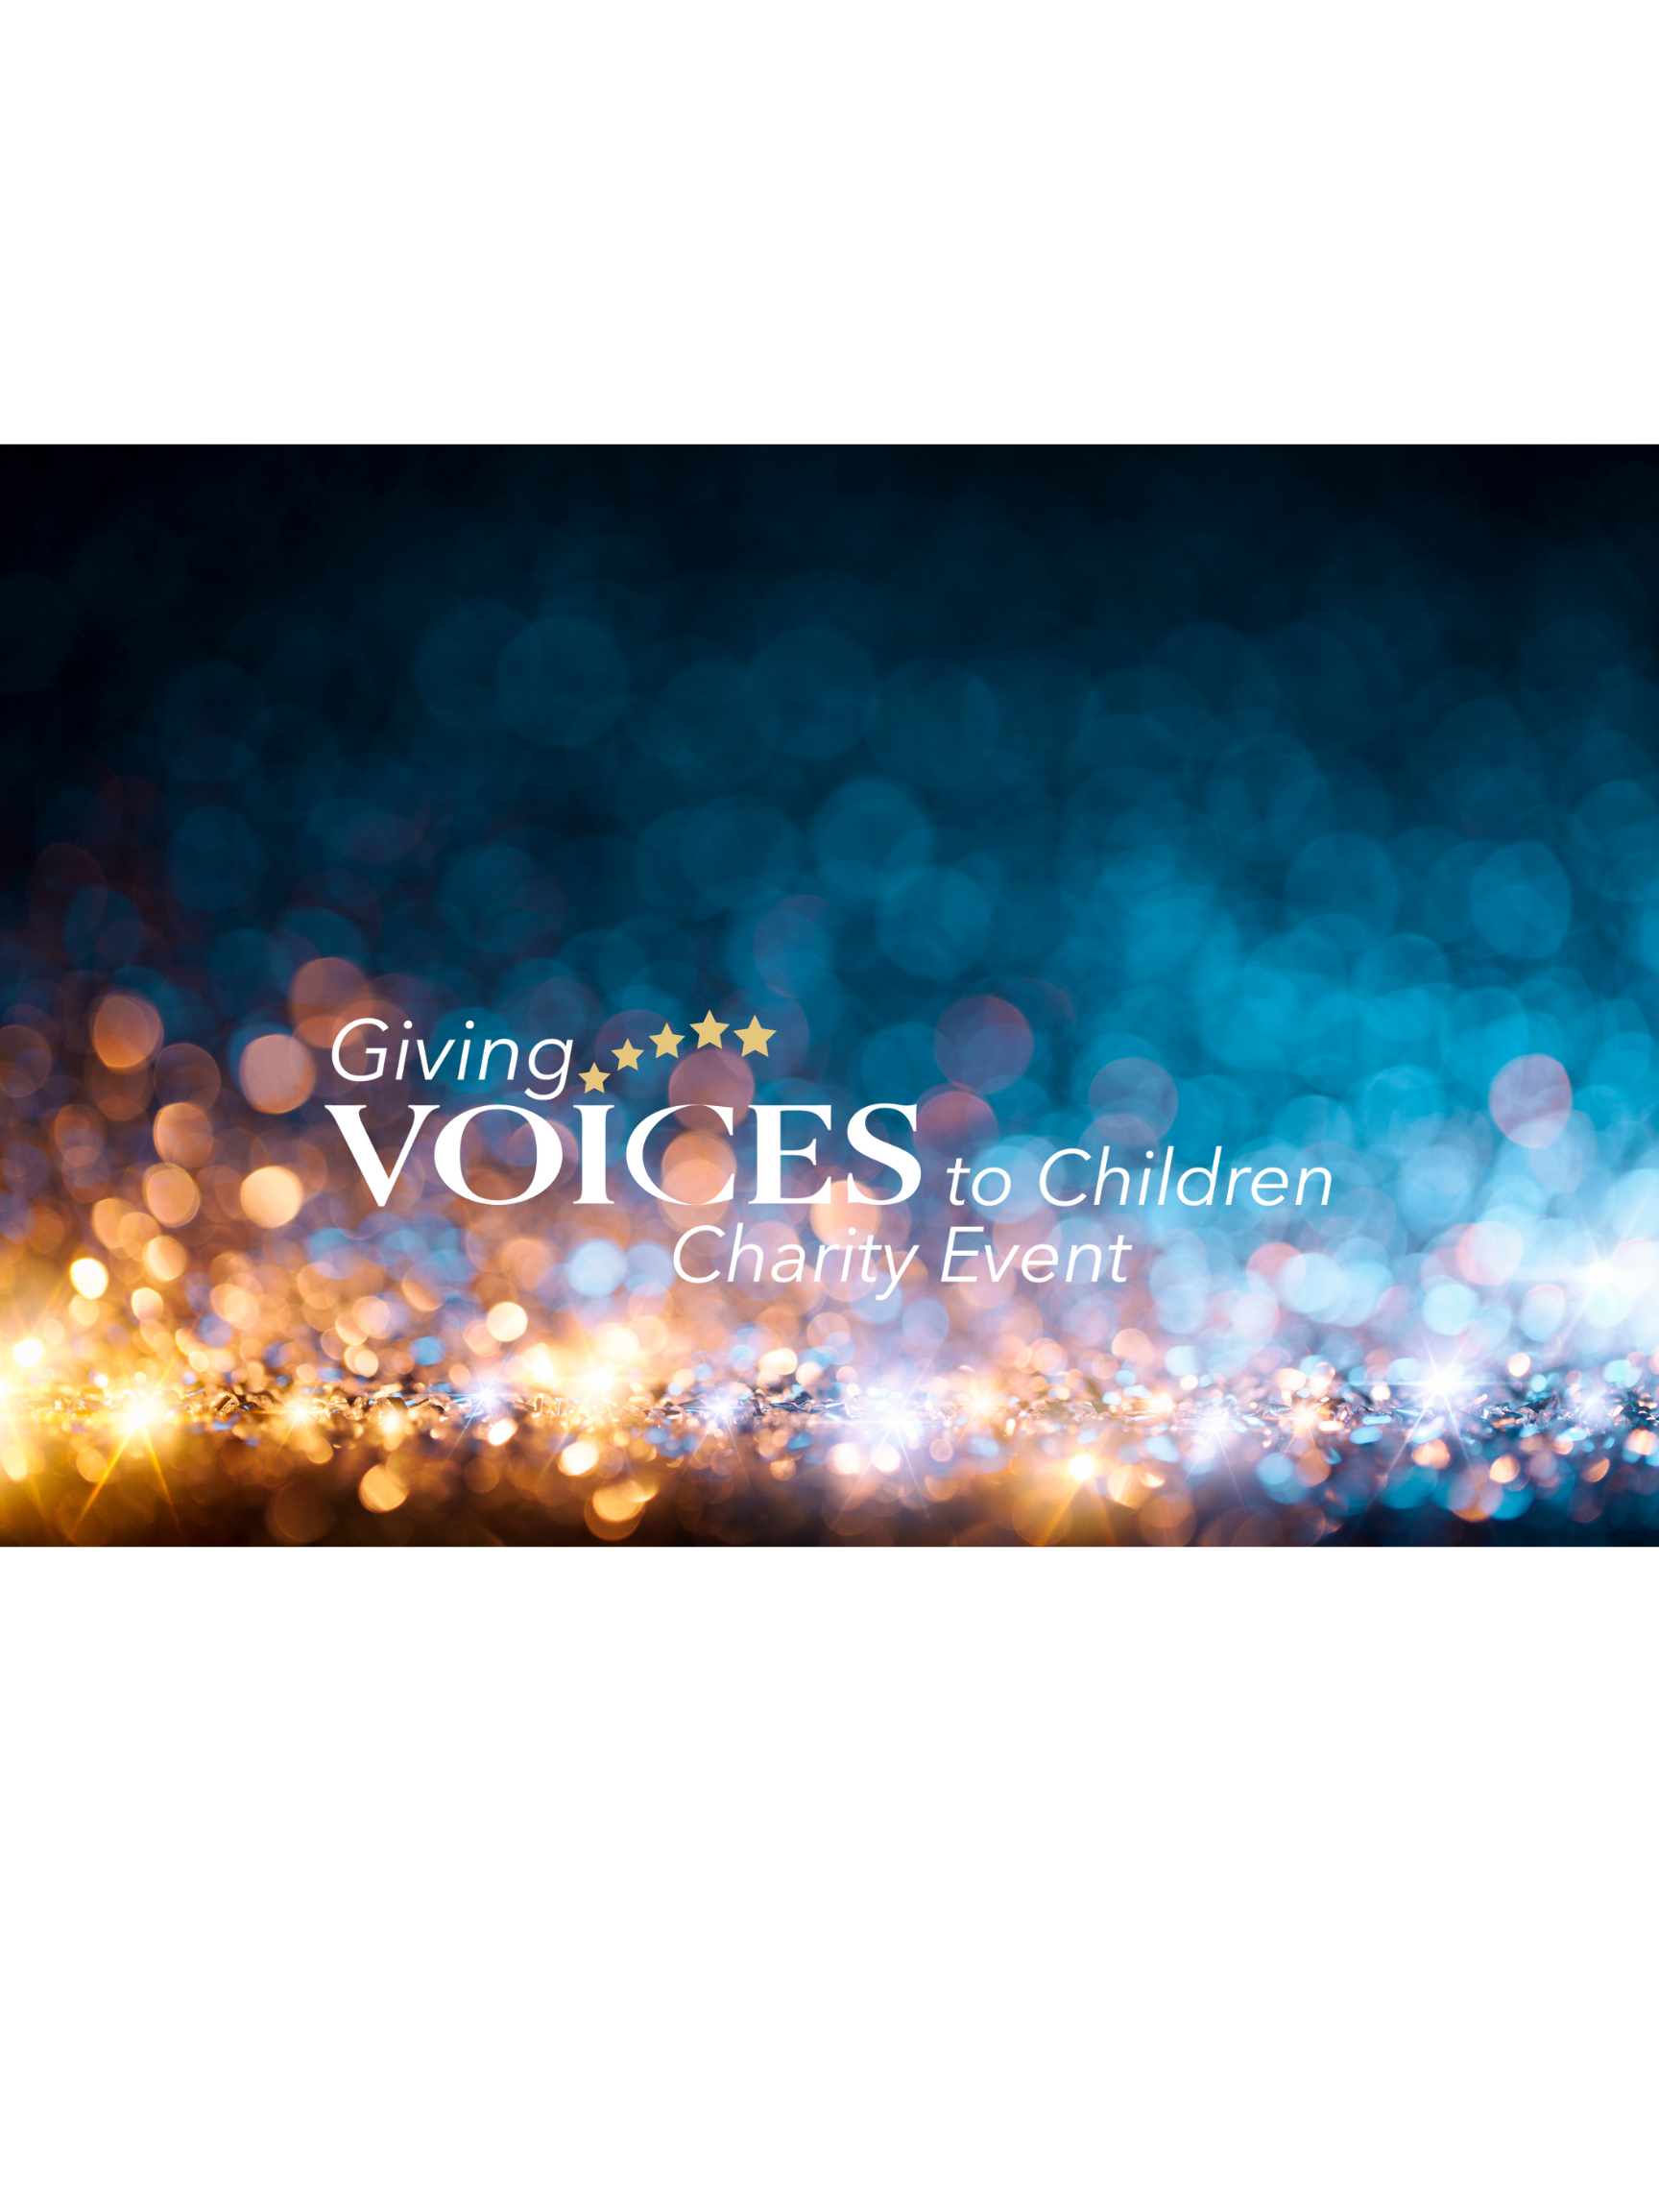 4050-E1 Giving Voices to Children Charity Event Sponsorships image